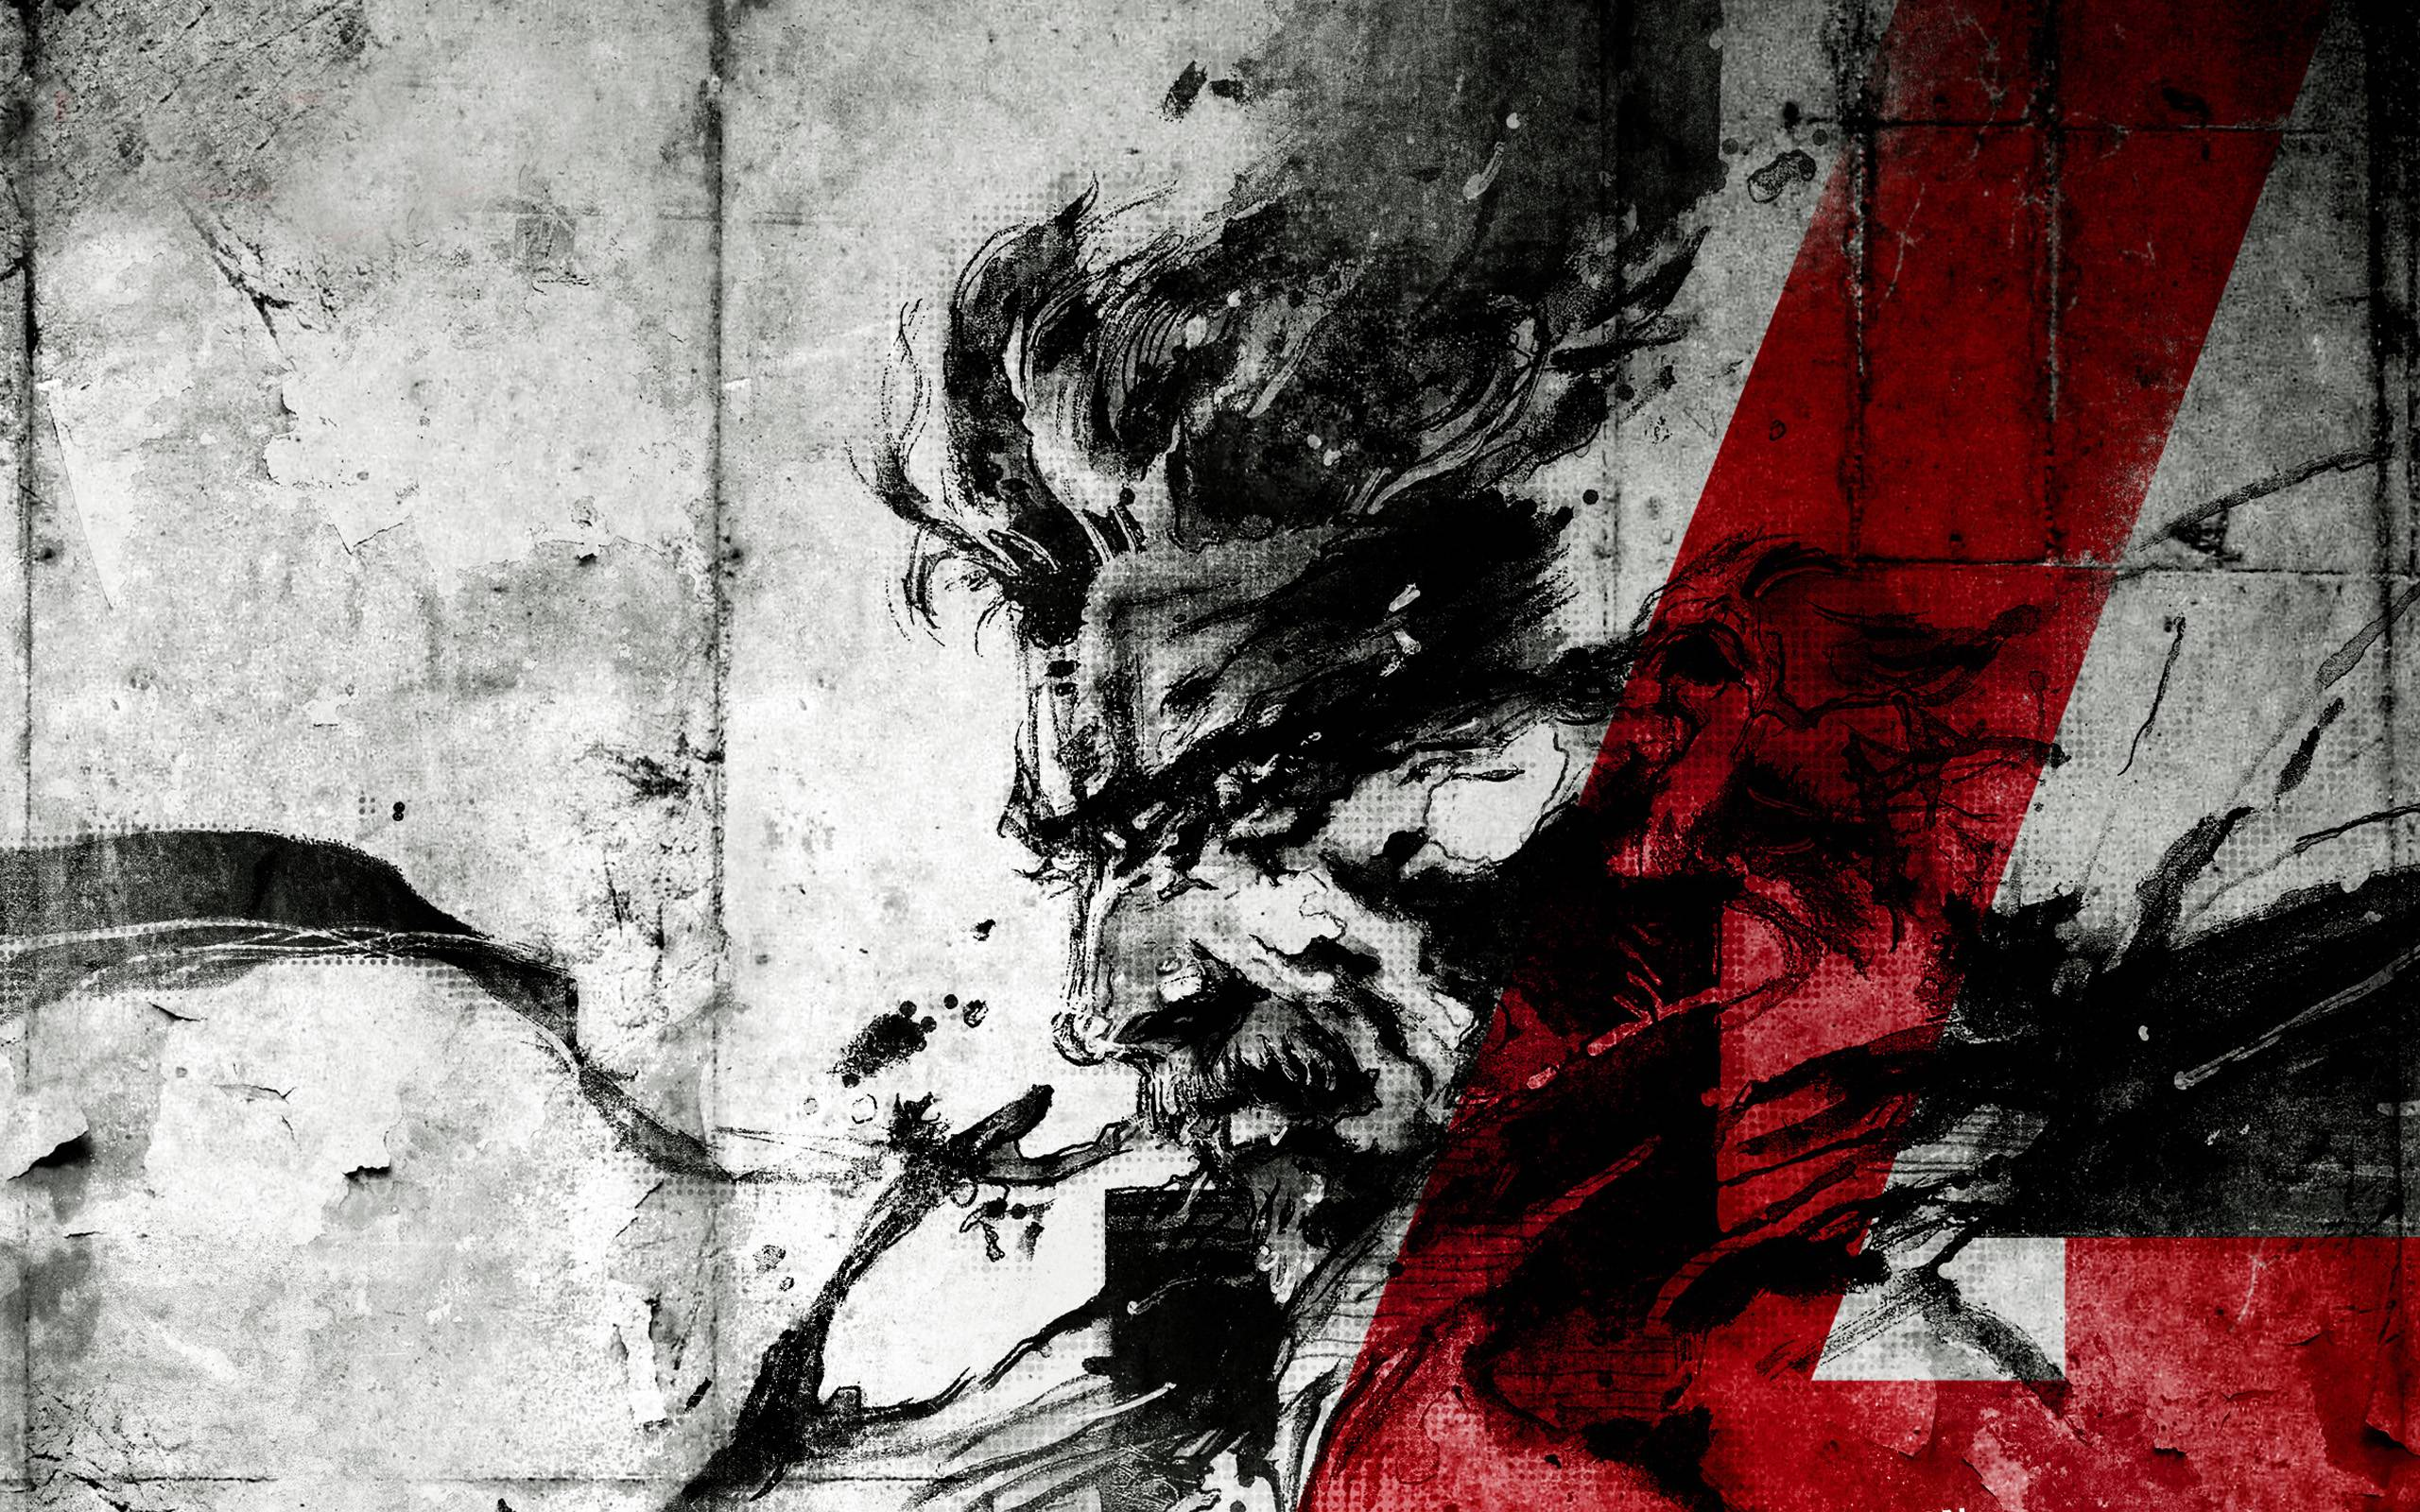 metal gear hd wallpapers - photo #8